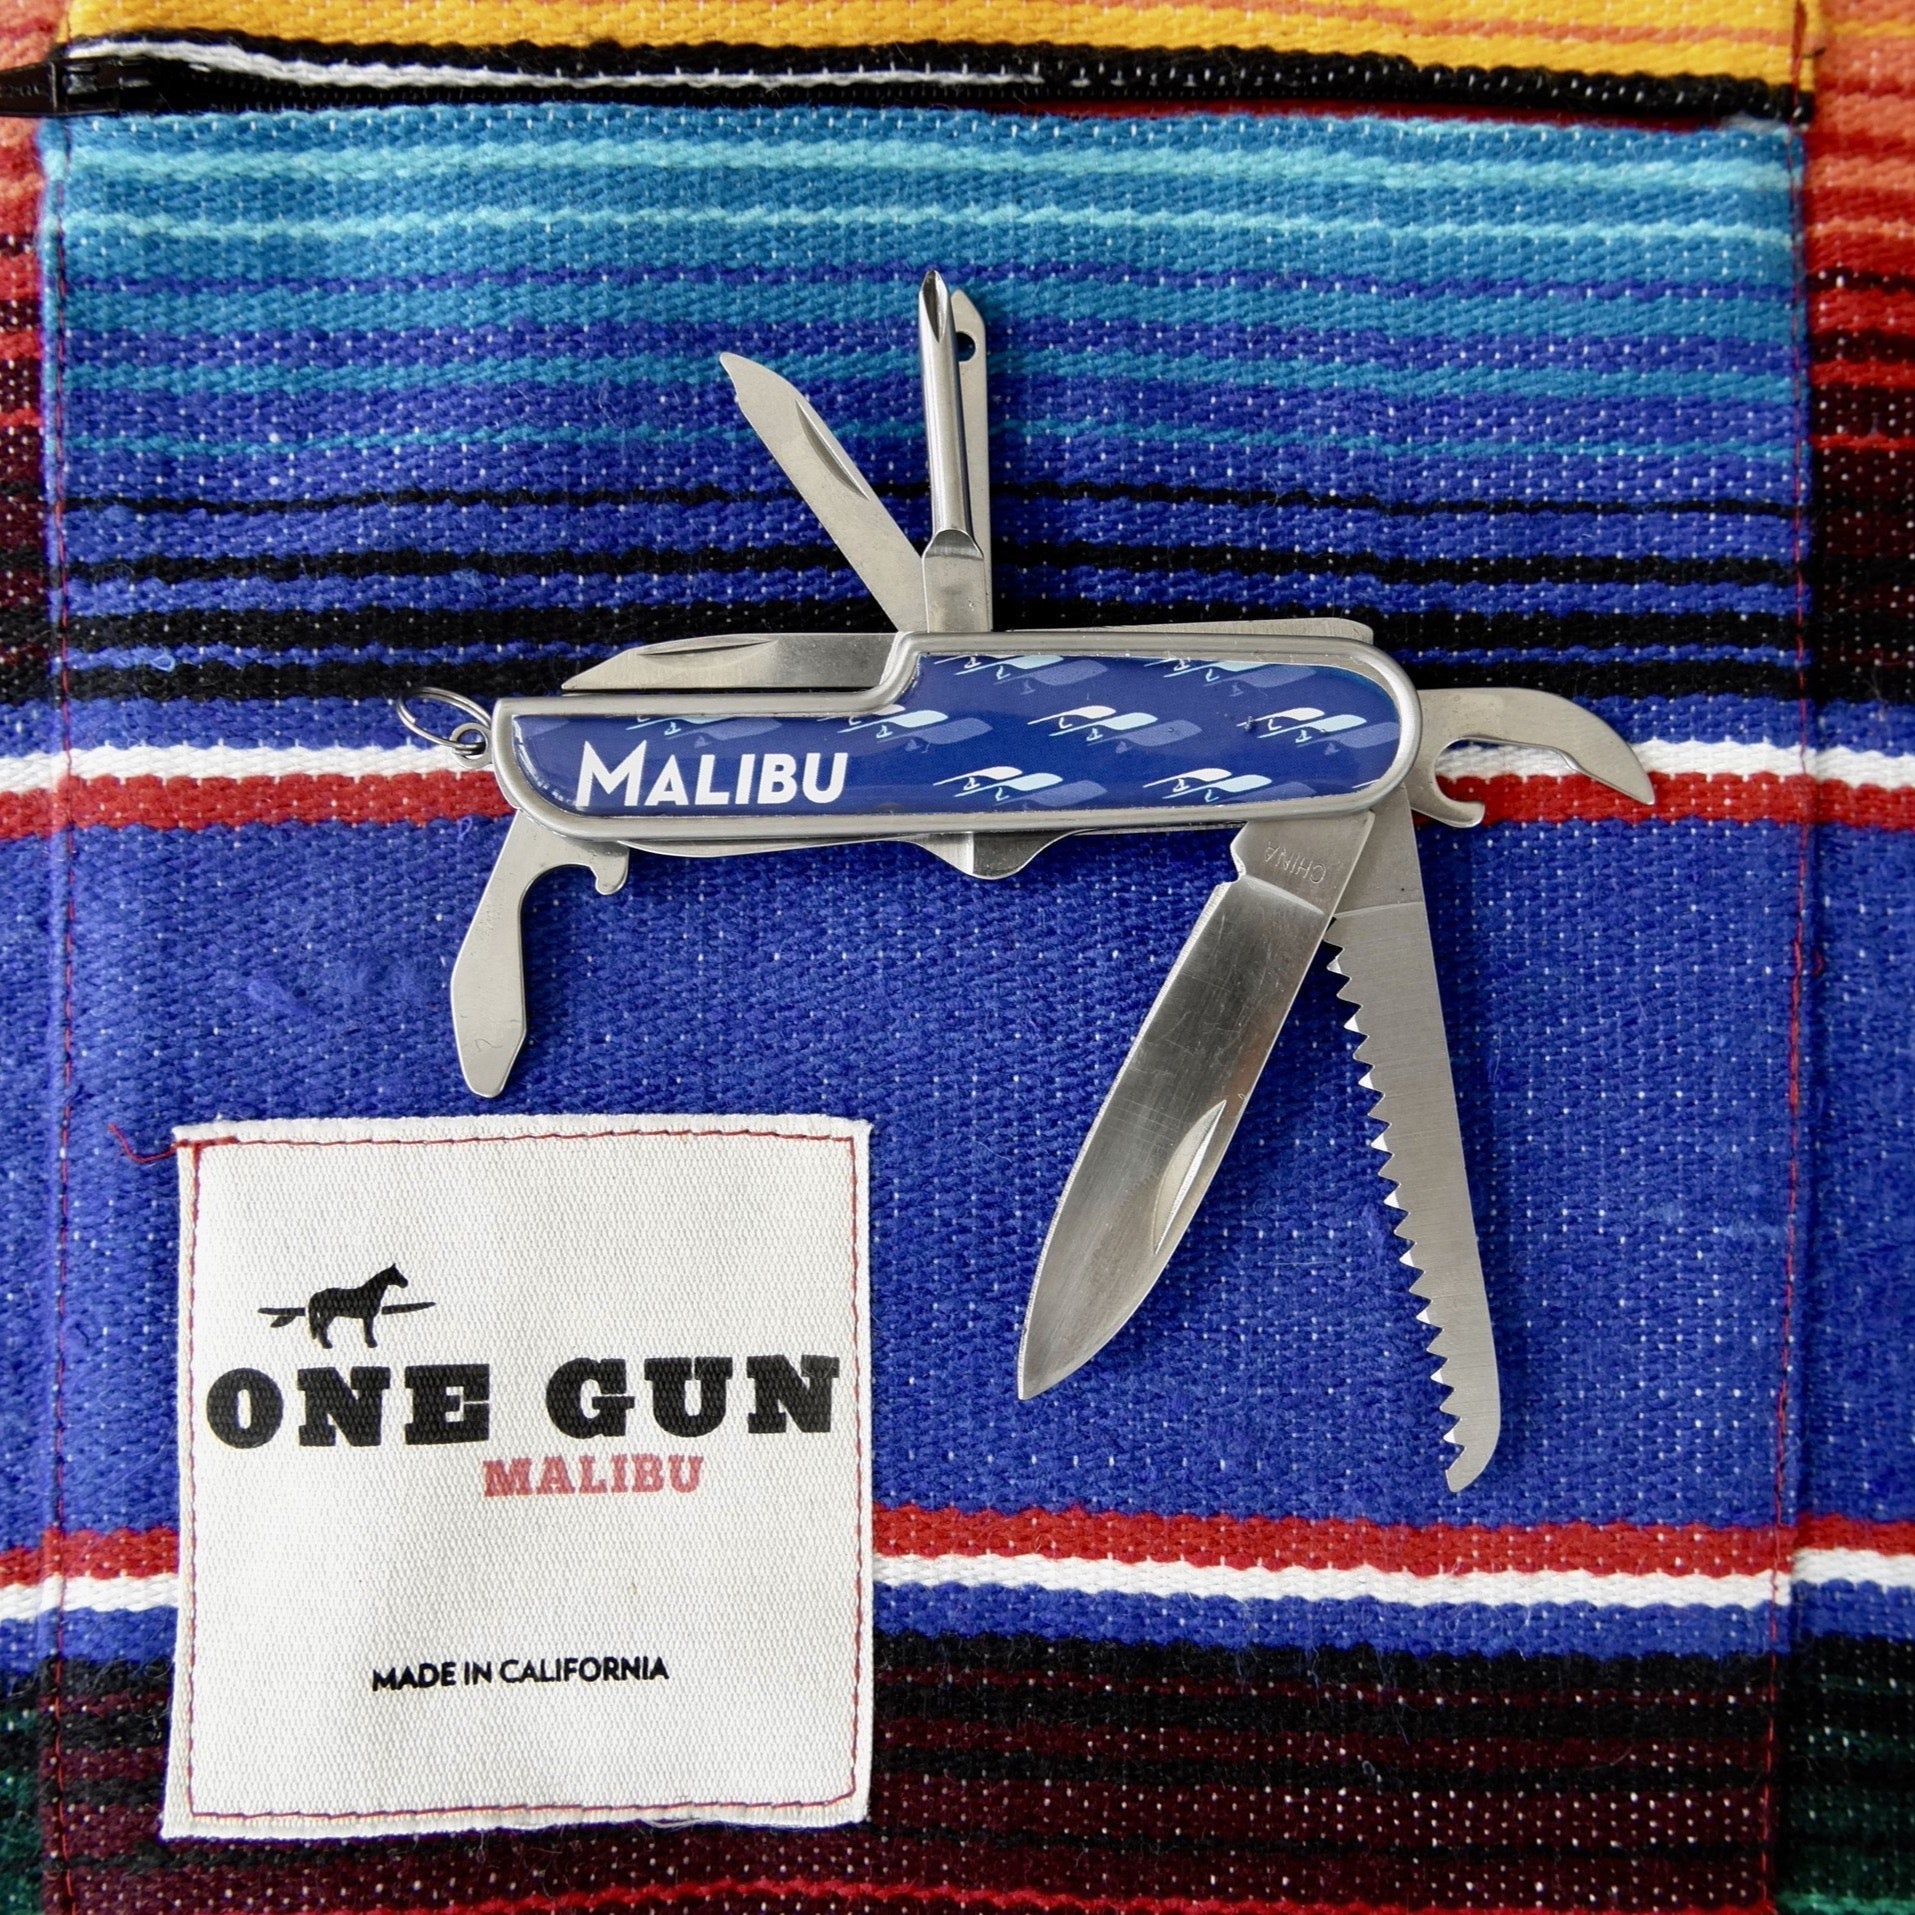 Malibu Pocket knife/Multi Tool. Has a knife, bottle opener, and screw